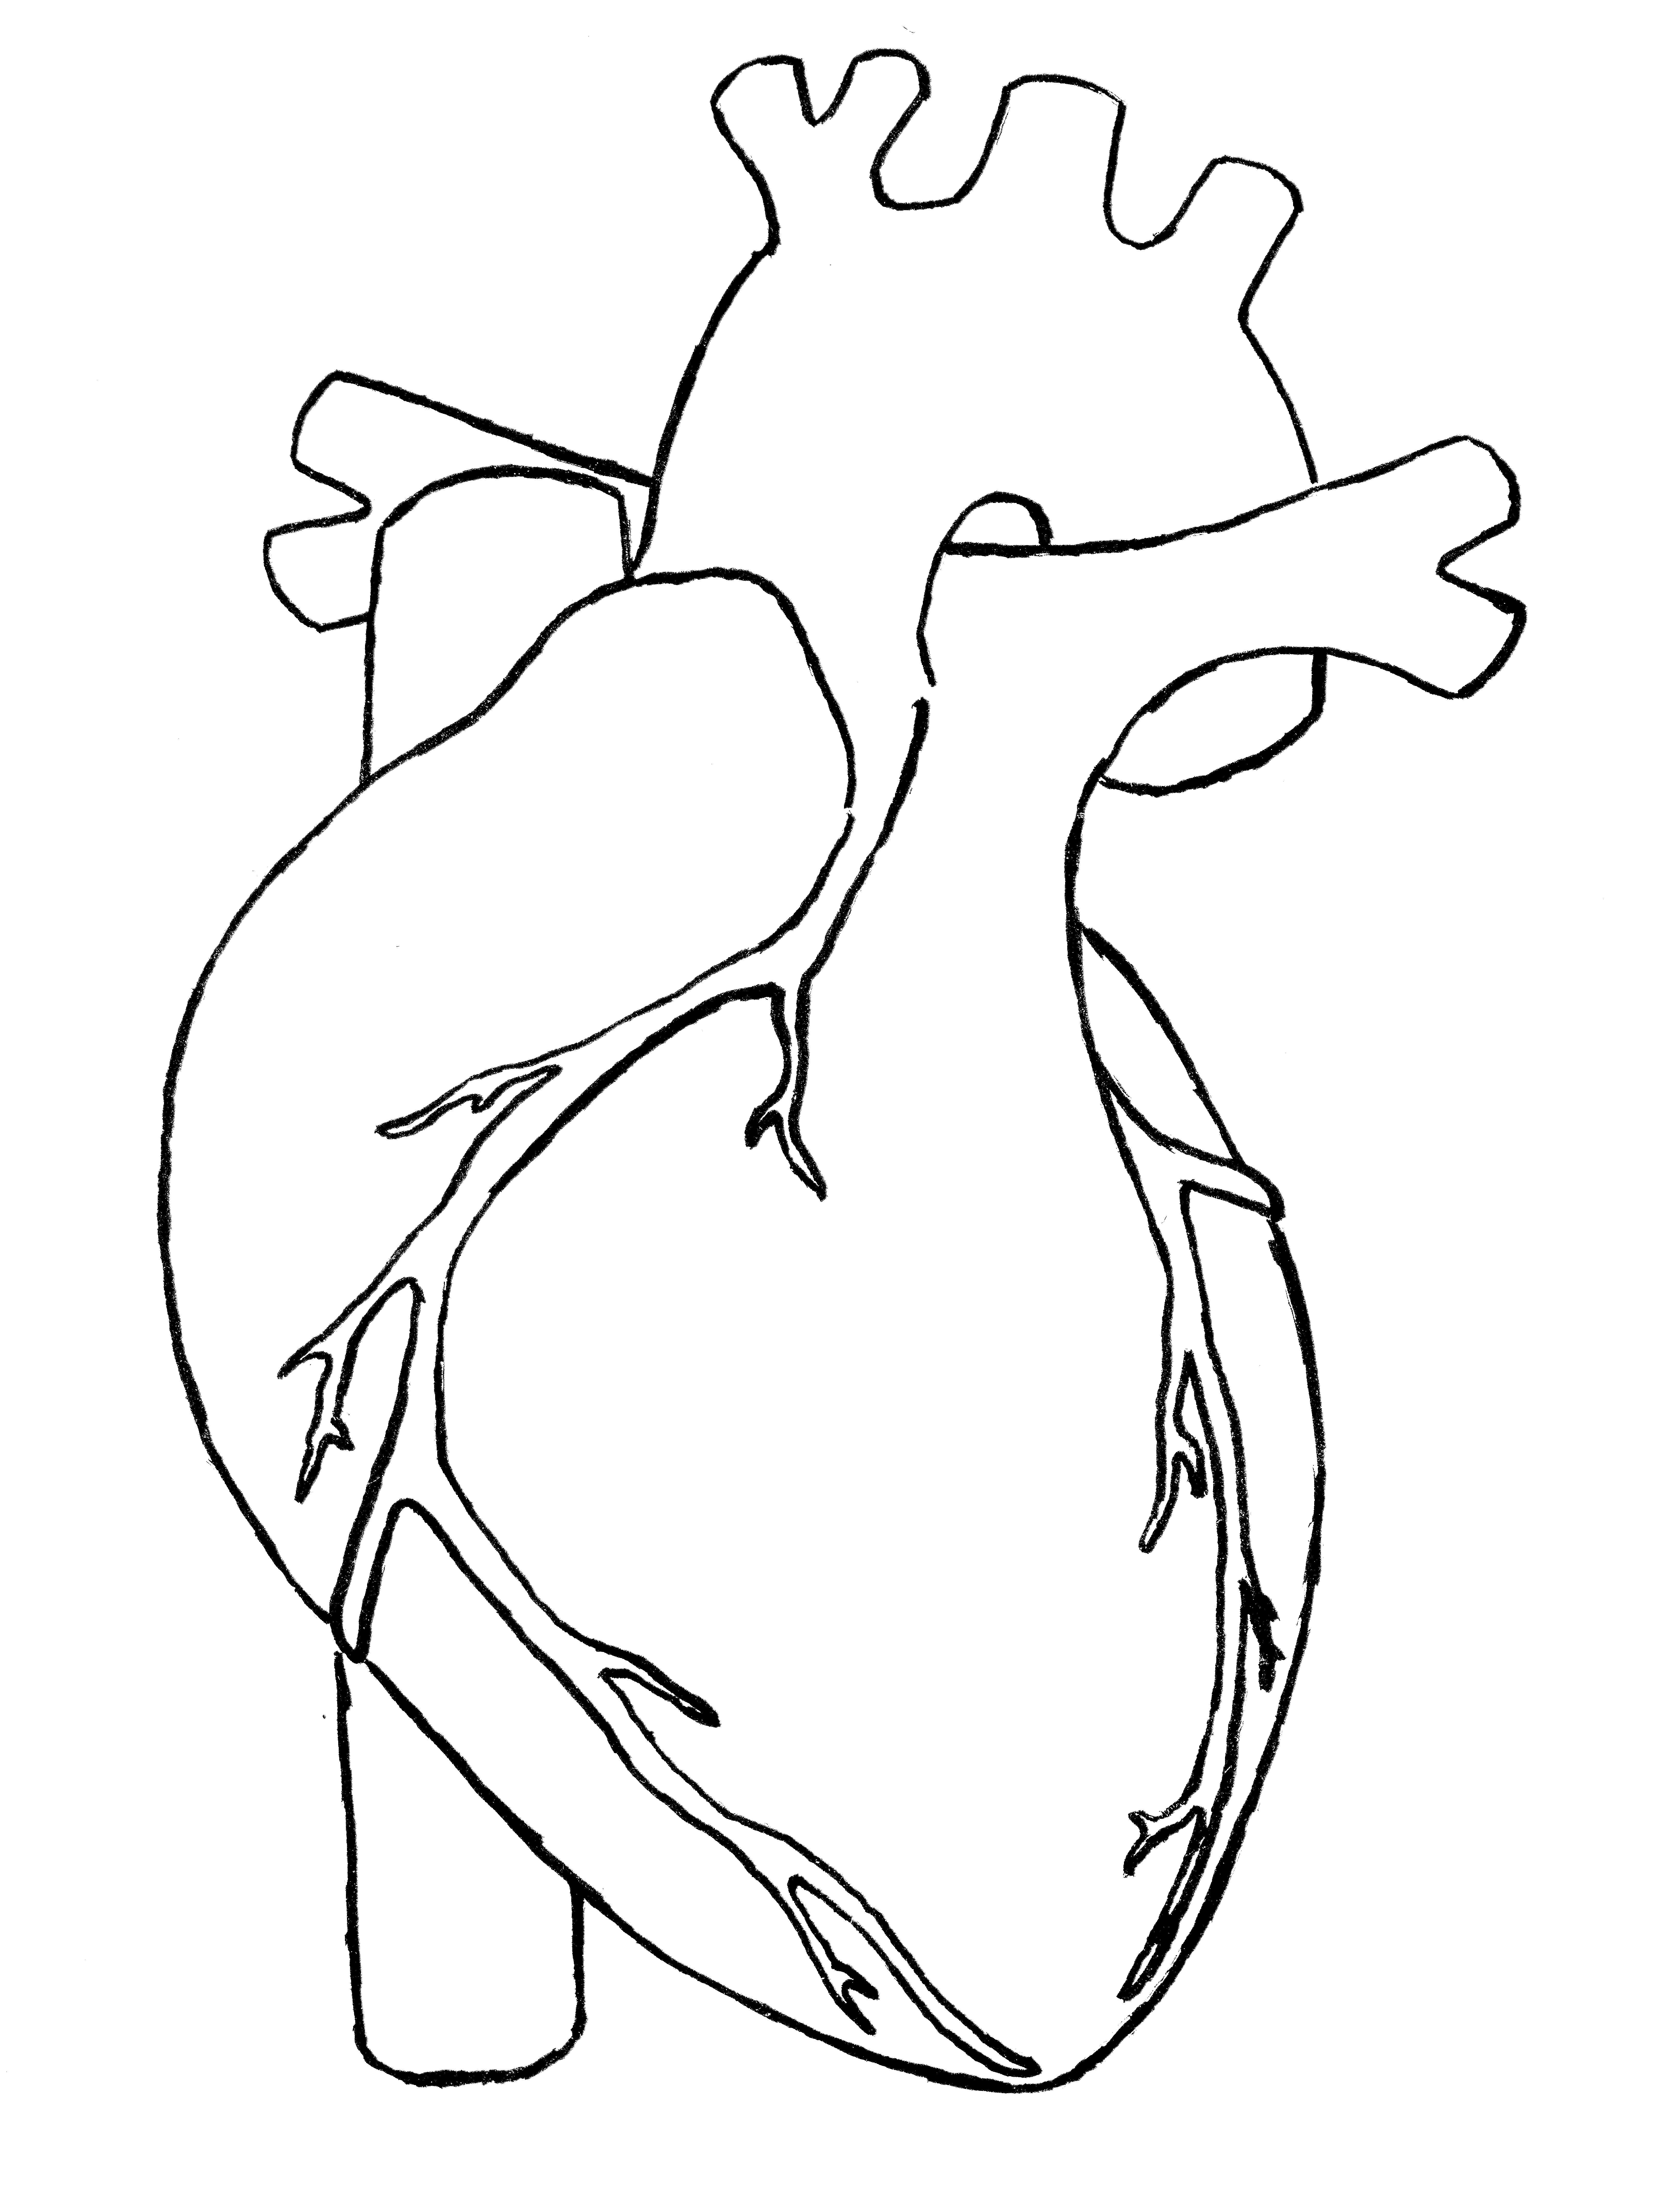 For You With Love | Human heart drawing, Heart sketch ...